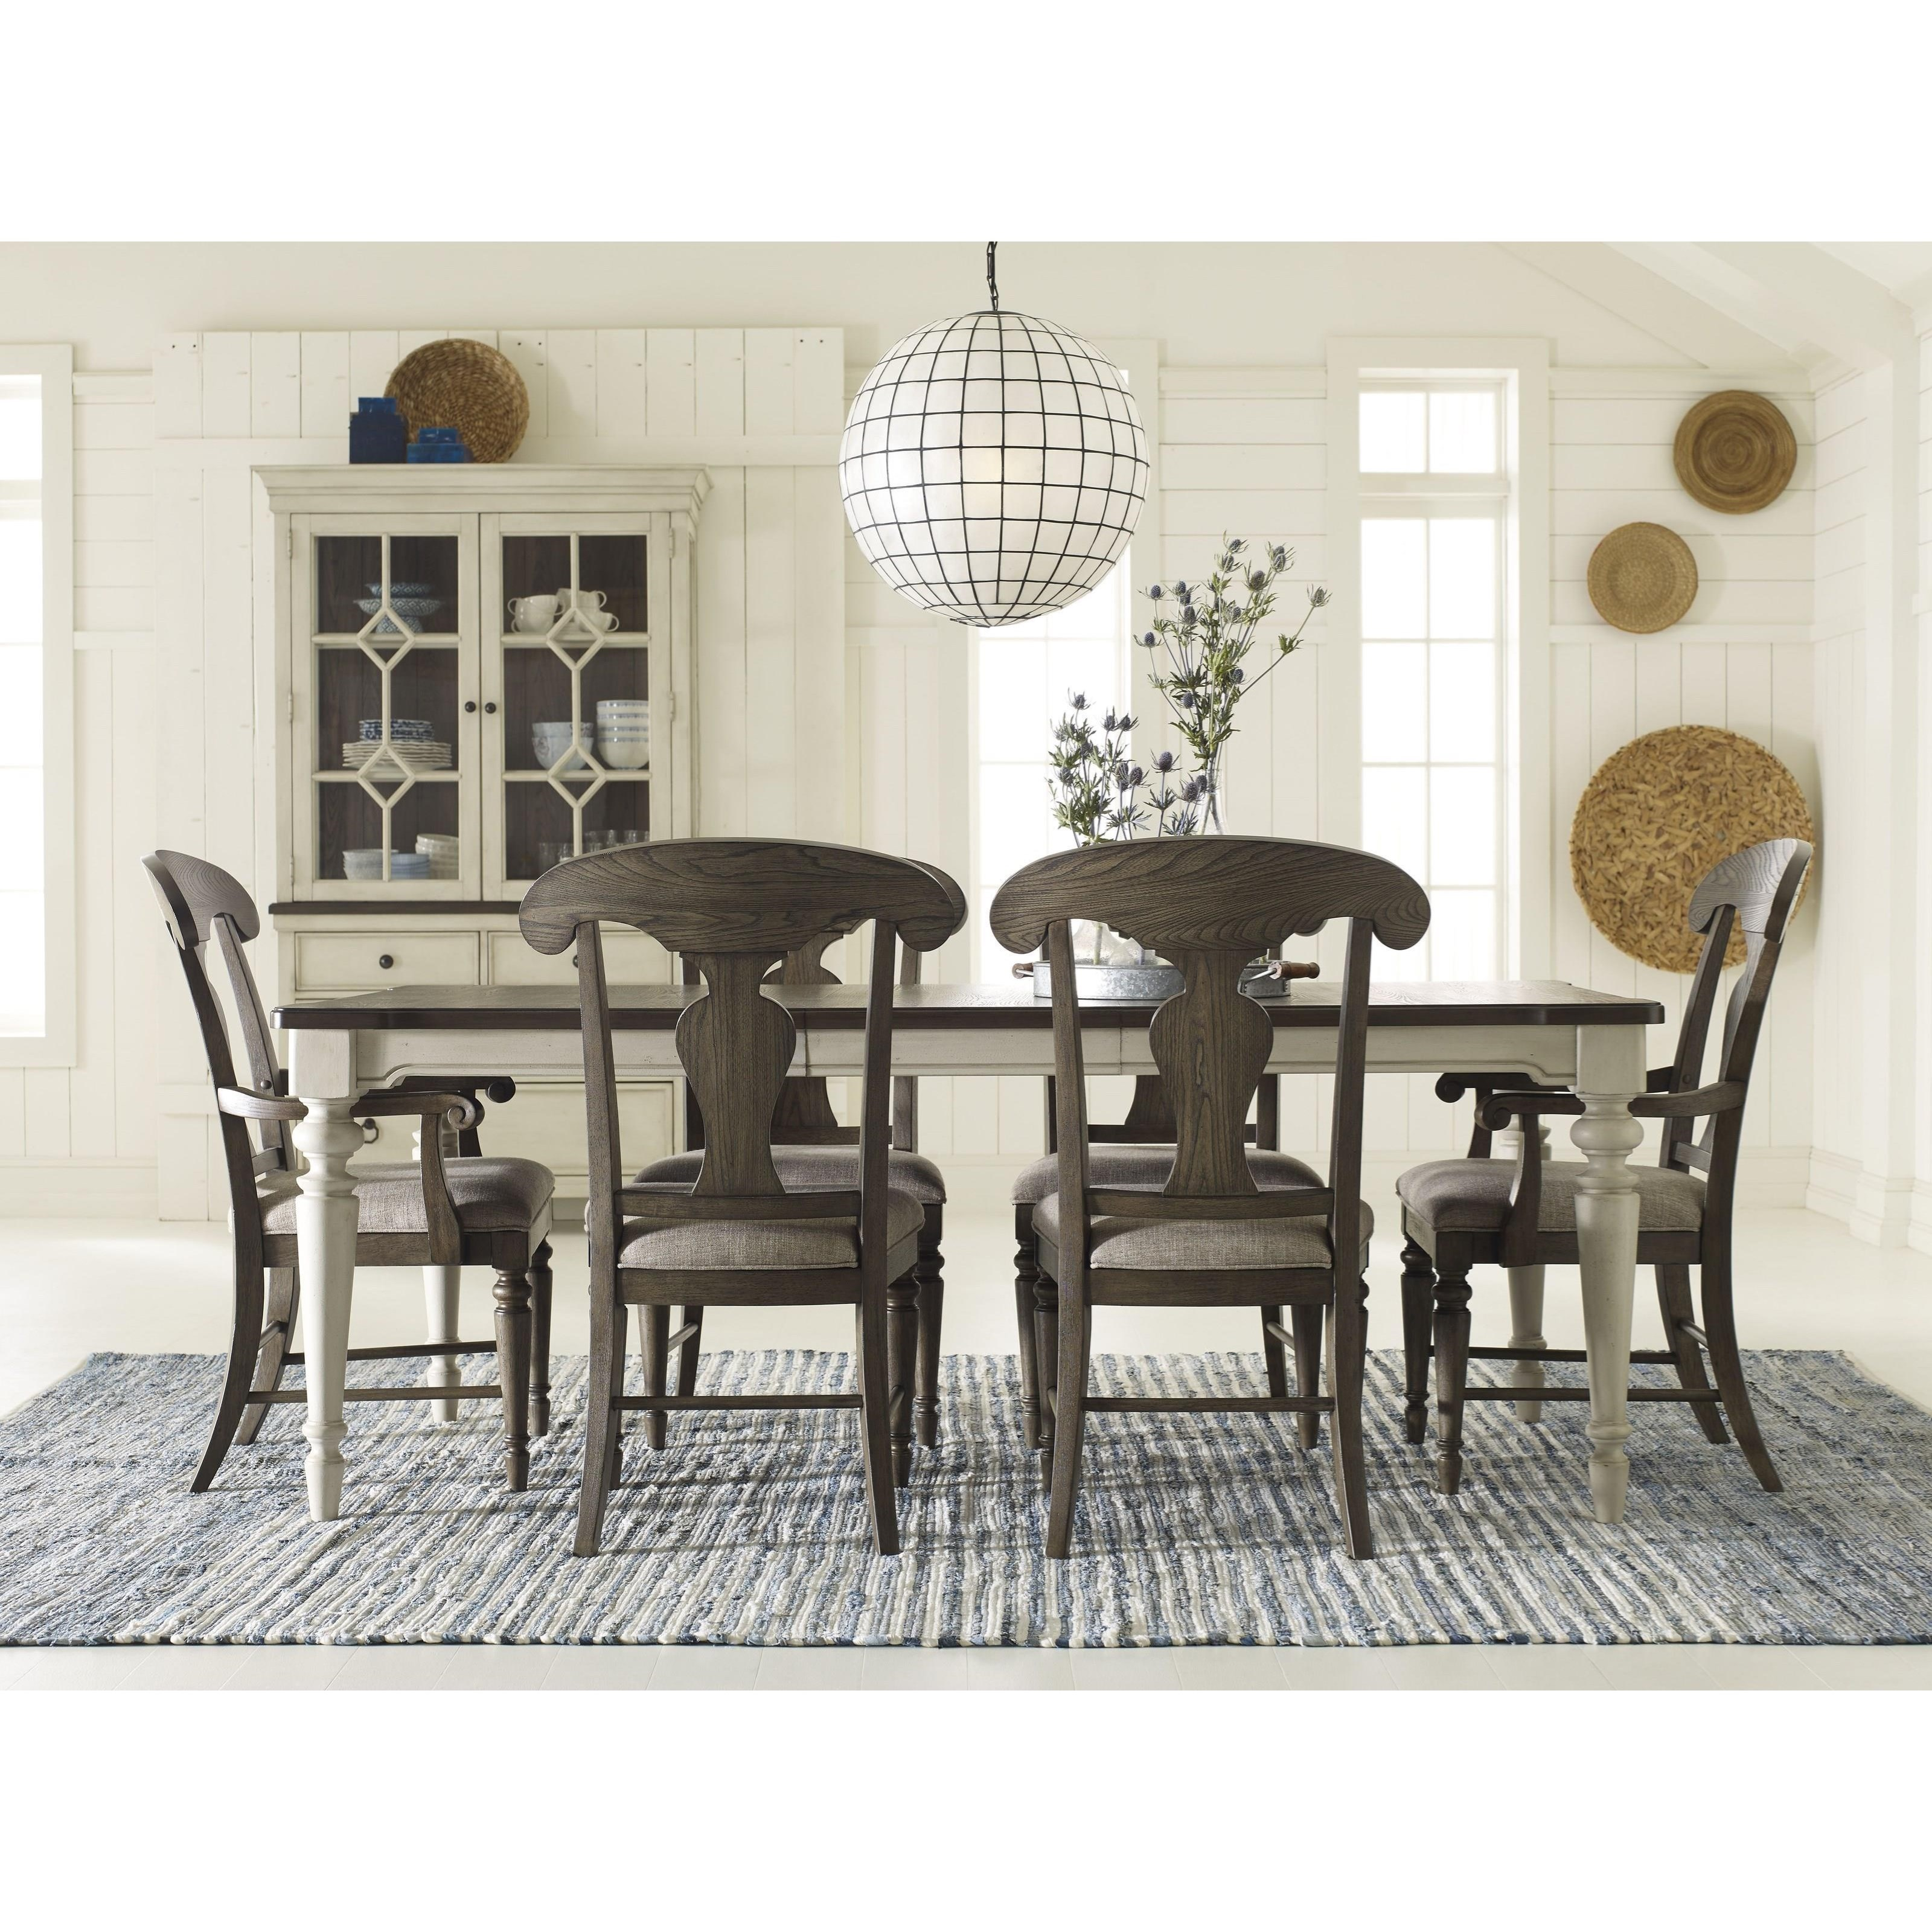 Legacy classic brookhaven splat back arm chair with for Legacy classic dining room furniture